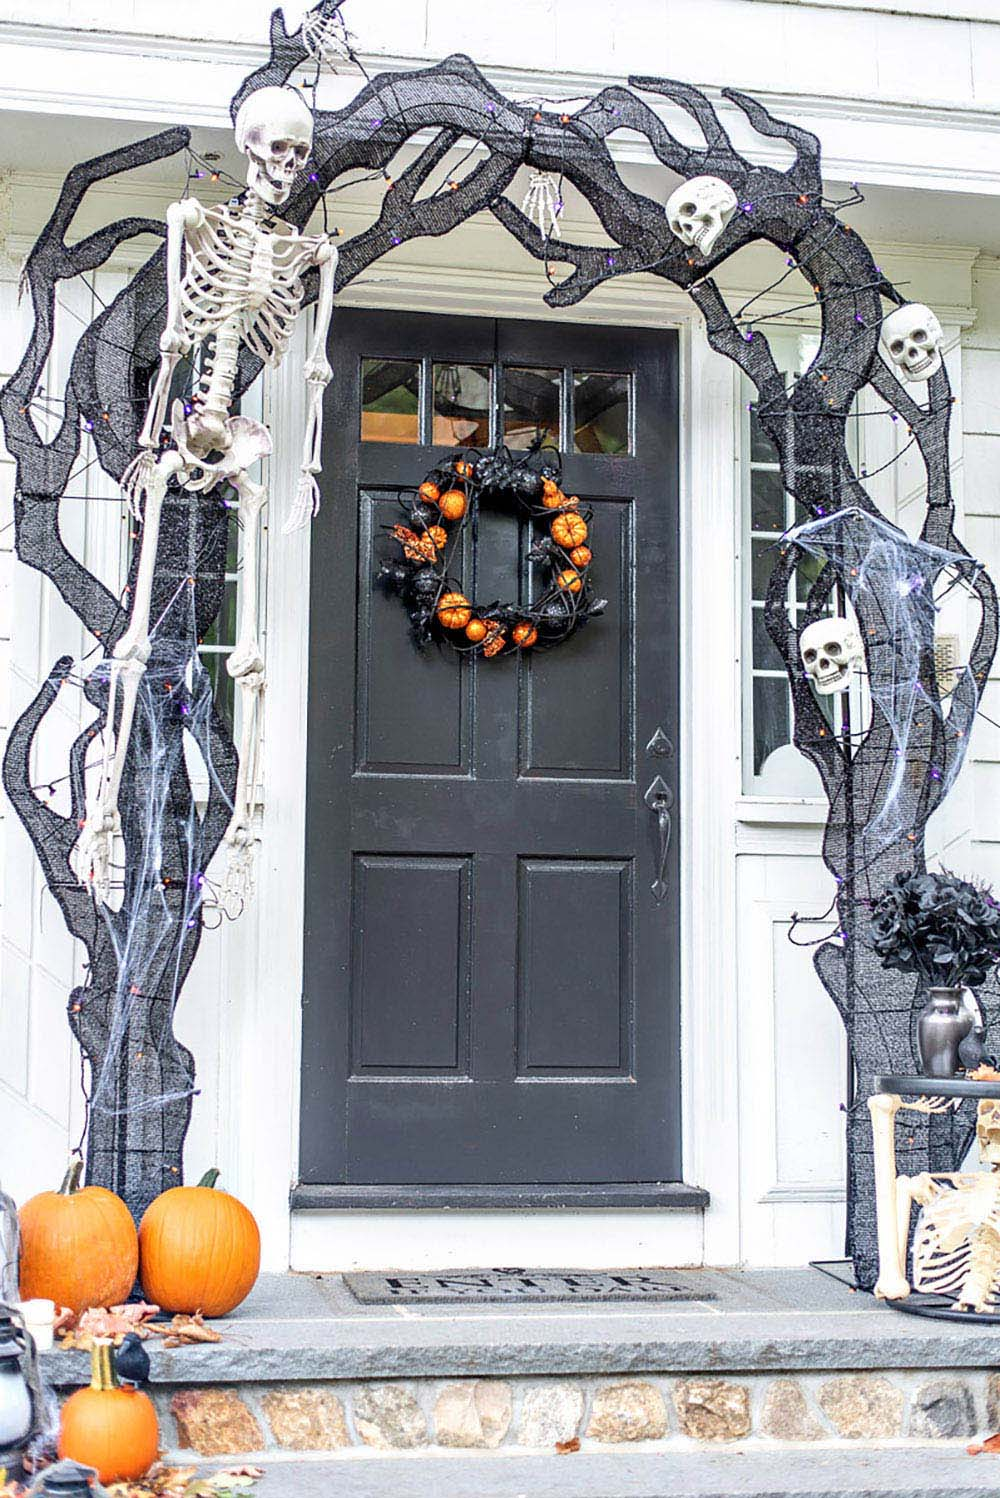 A close up shot of the front door with pumpkins, skeletons and faux smoke